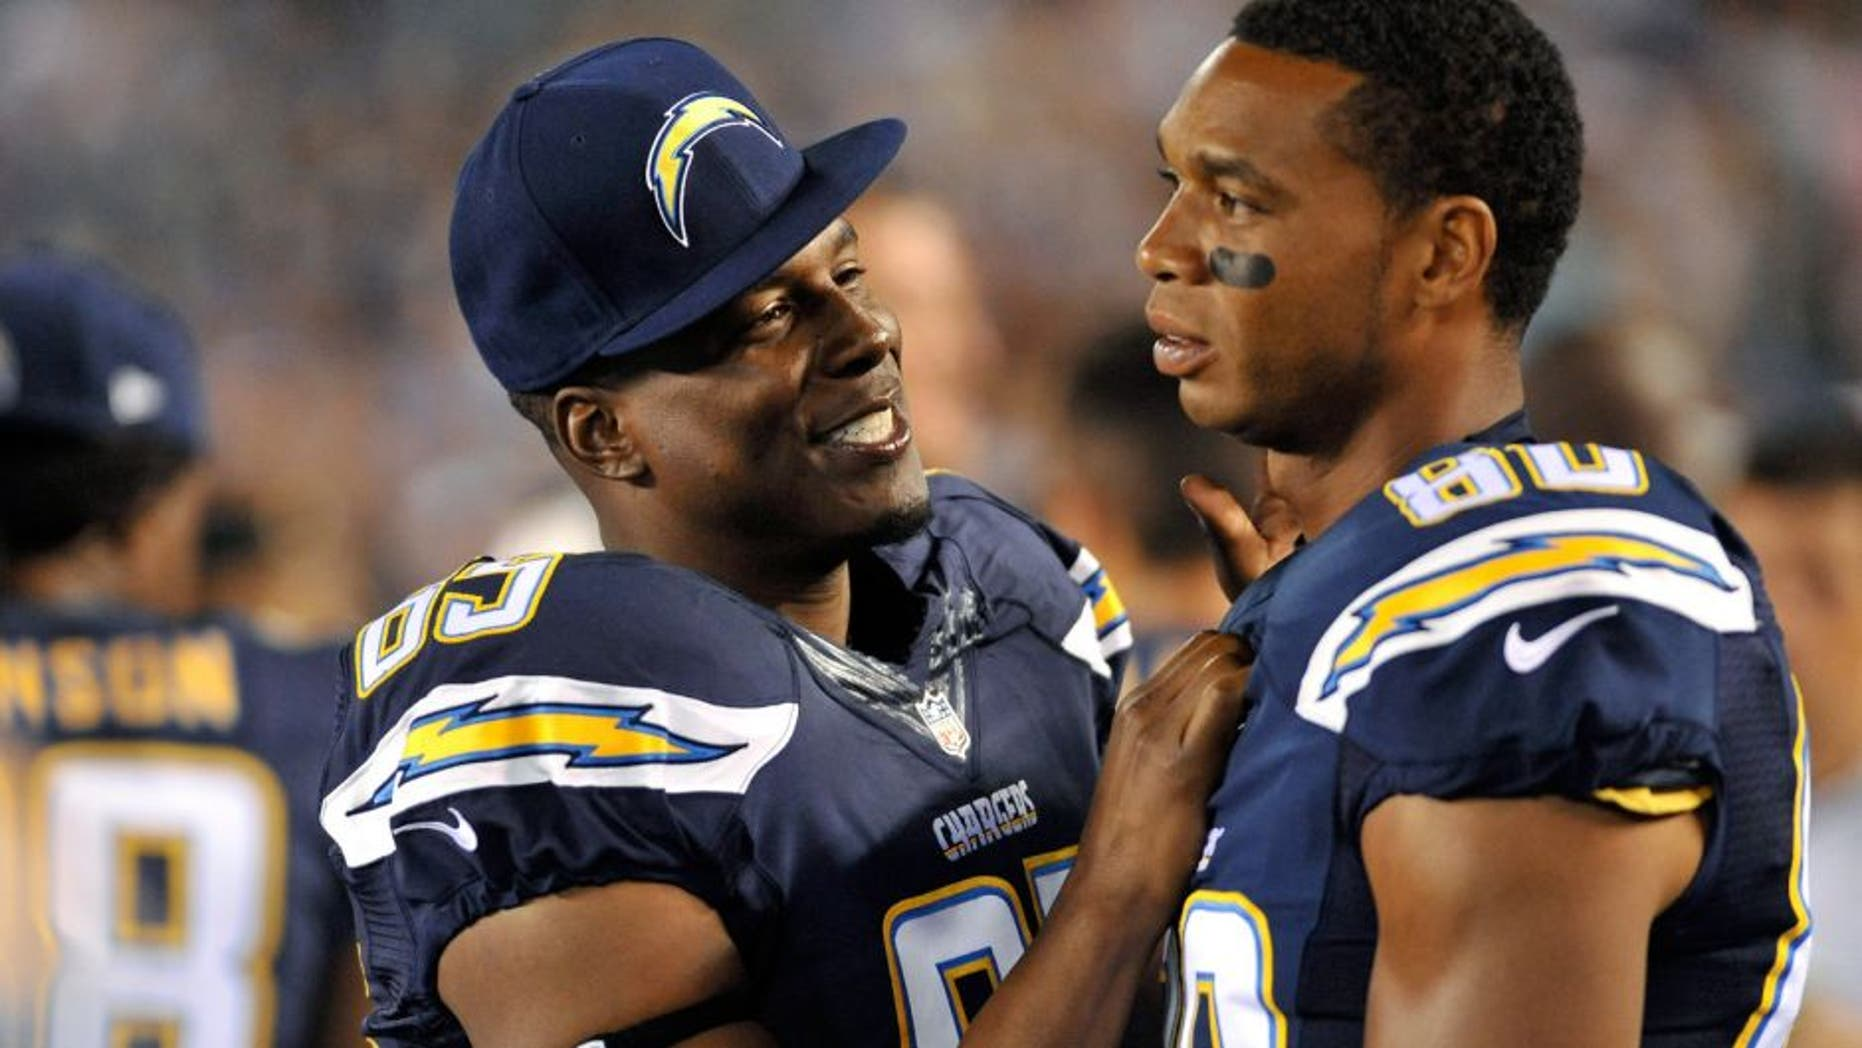 Aug 13, 2015; San Diego, CA, USA; San Diego Chargers tight end Antonio Gates (85) and wide receiver Malcom Floyd (80) in a preseason NFL football game against the Dallas Cowboys at Qualcomm Stadium. Mandatory Credit: Orlando Ramirez-USA TODAY Sports